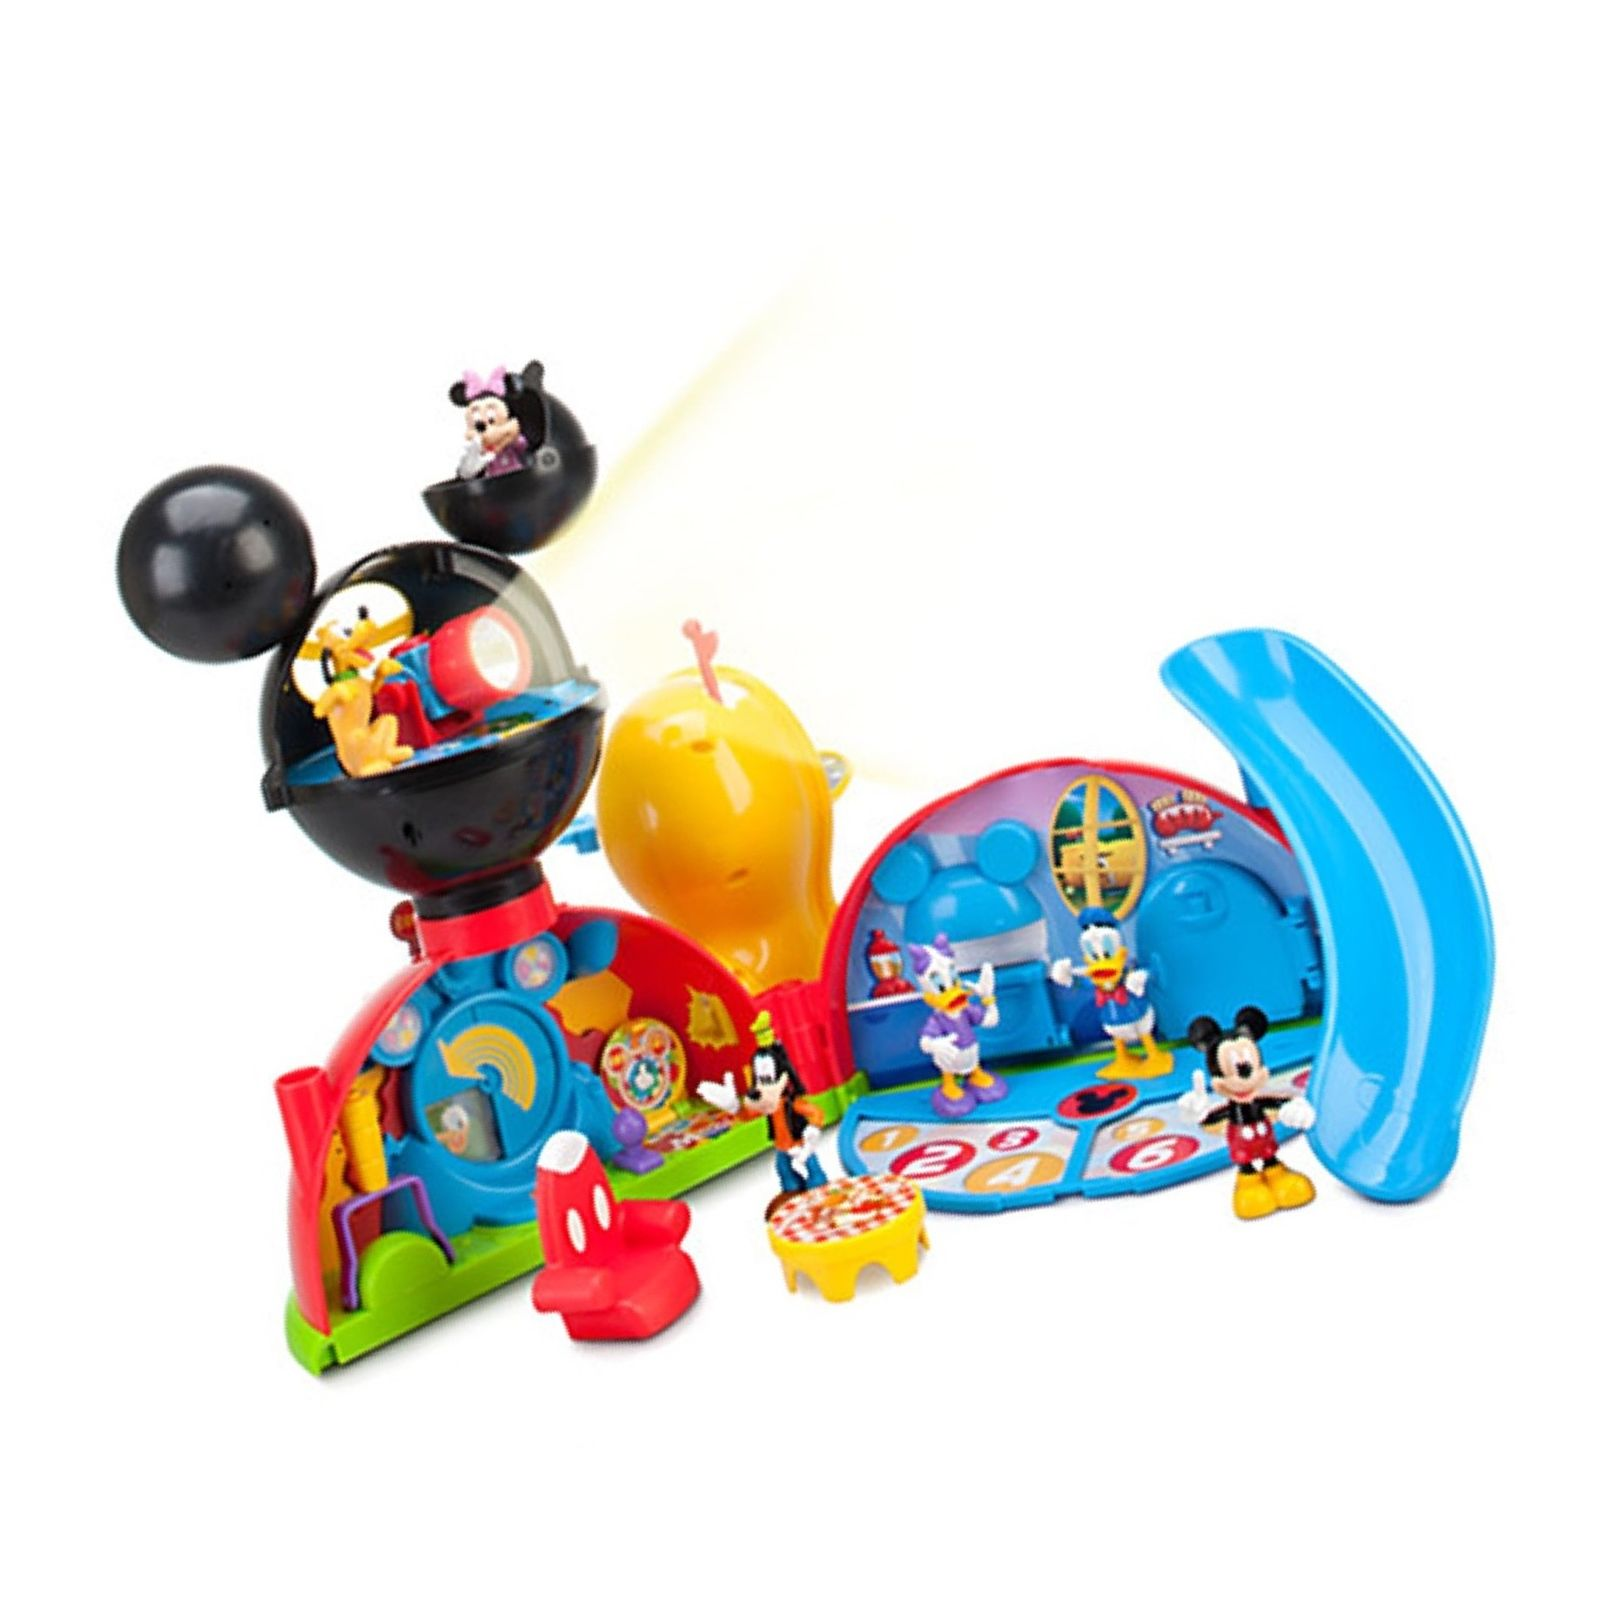 1600x1600 Disney Mickey Mouse Clubhouse Playset With 6 Figures Ebay